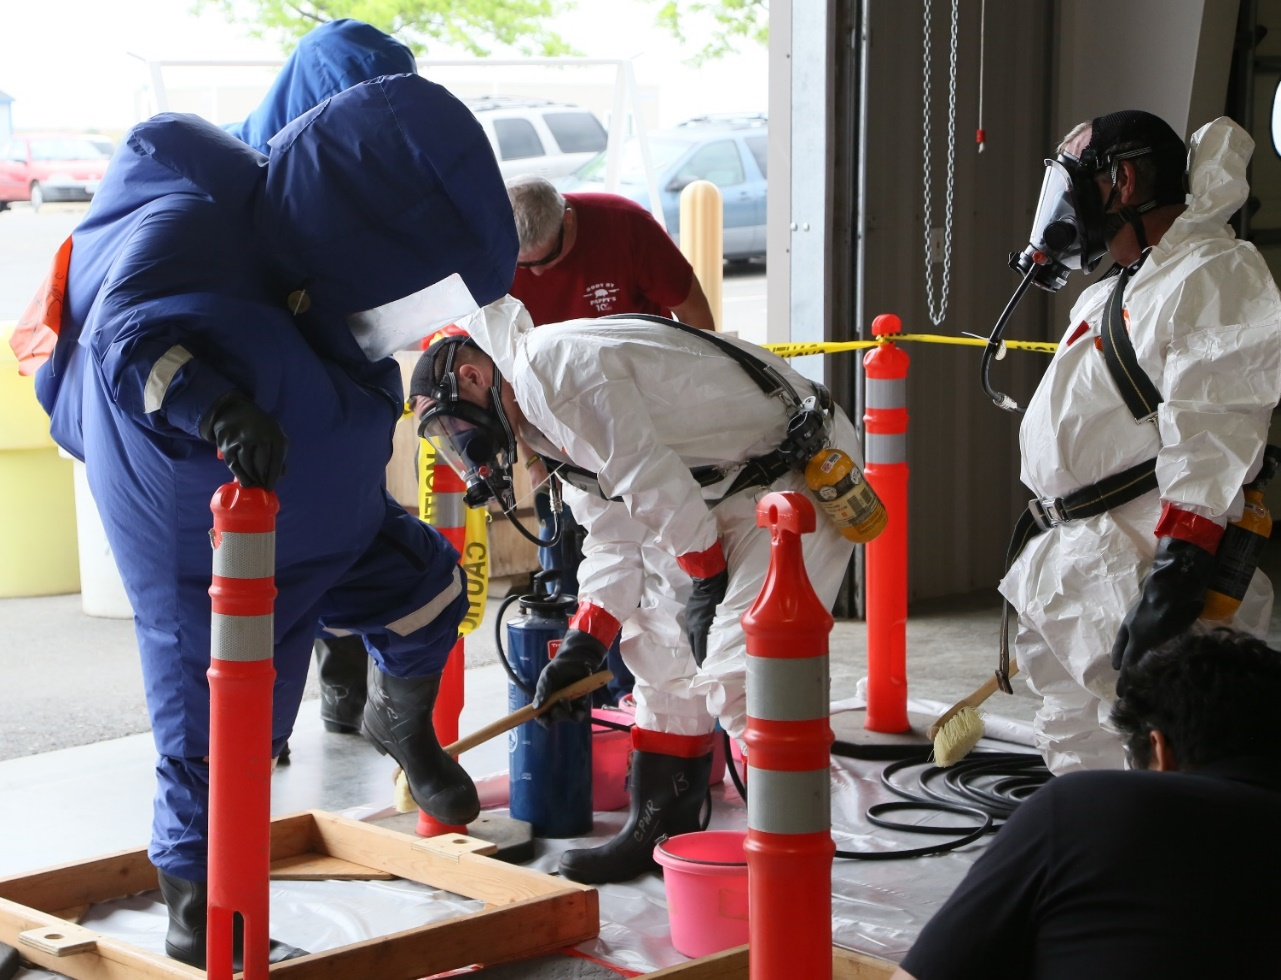 Workers go through a decontamination line as part of a 40-hour hazardous waste training course at HAMMER.